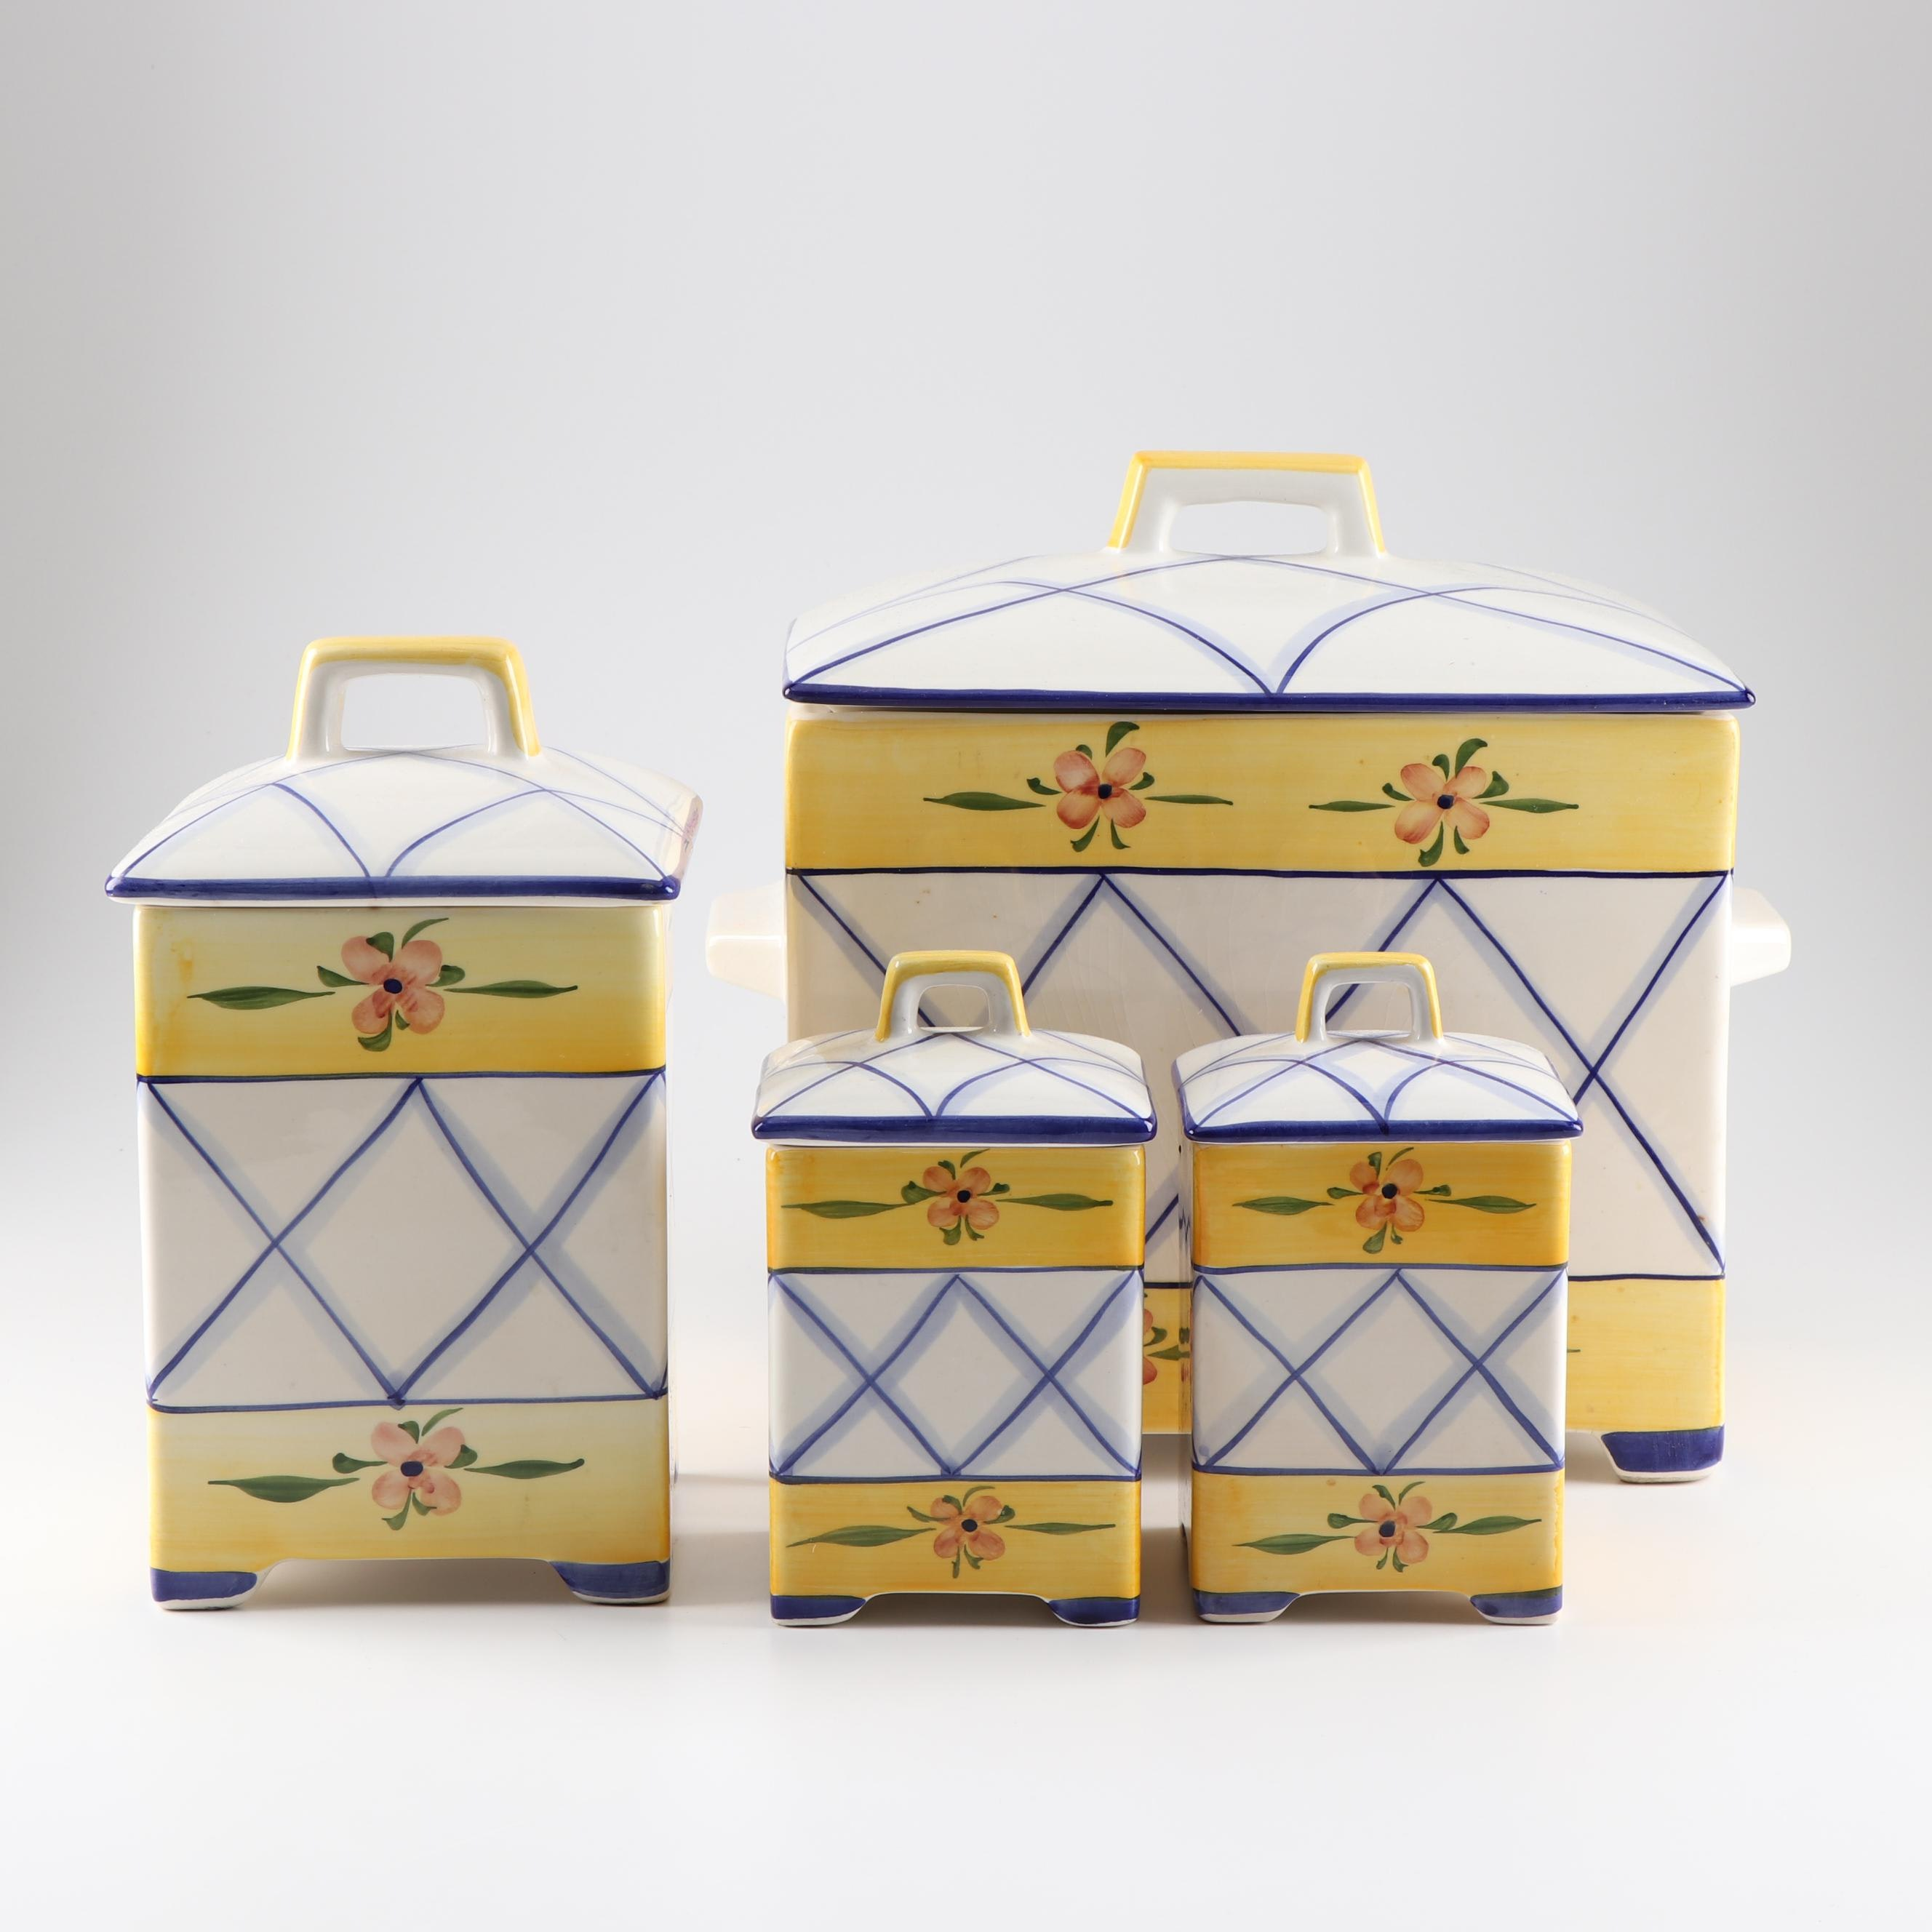 Jay Willfred Porcelain Storage Canisters by Sadek